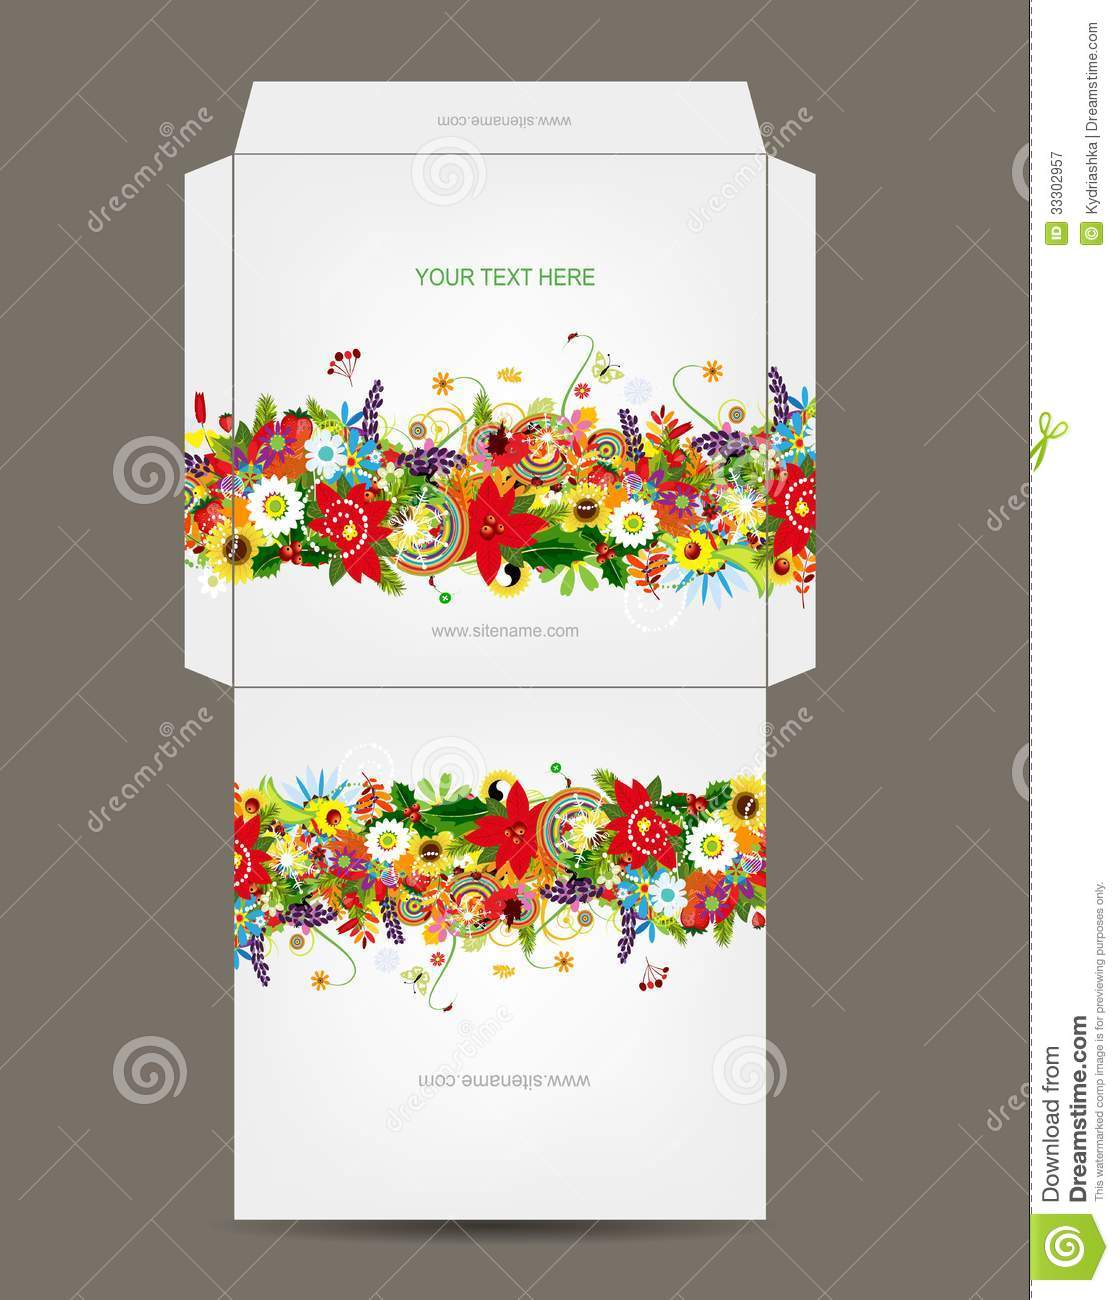 Envelope Template Floral Design Royalty Free Stock Photography Image 33302957